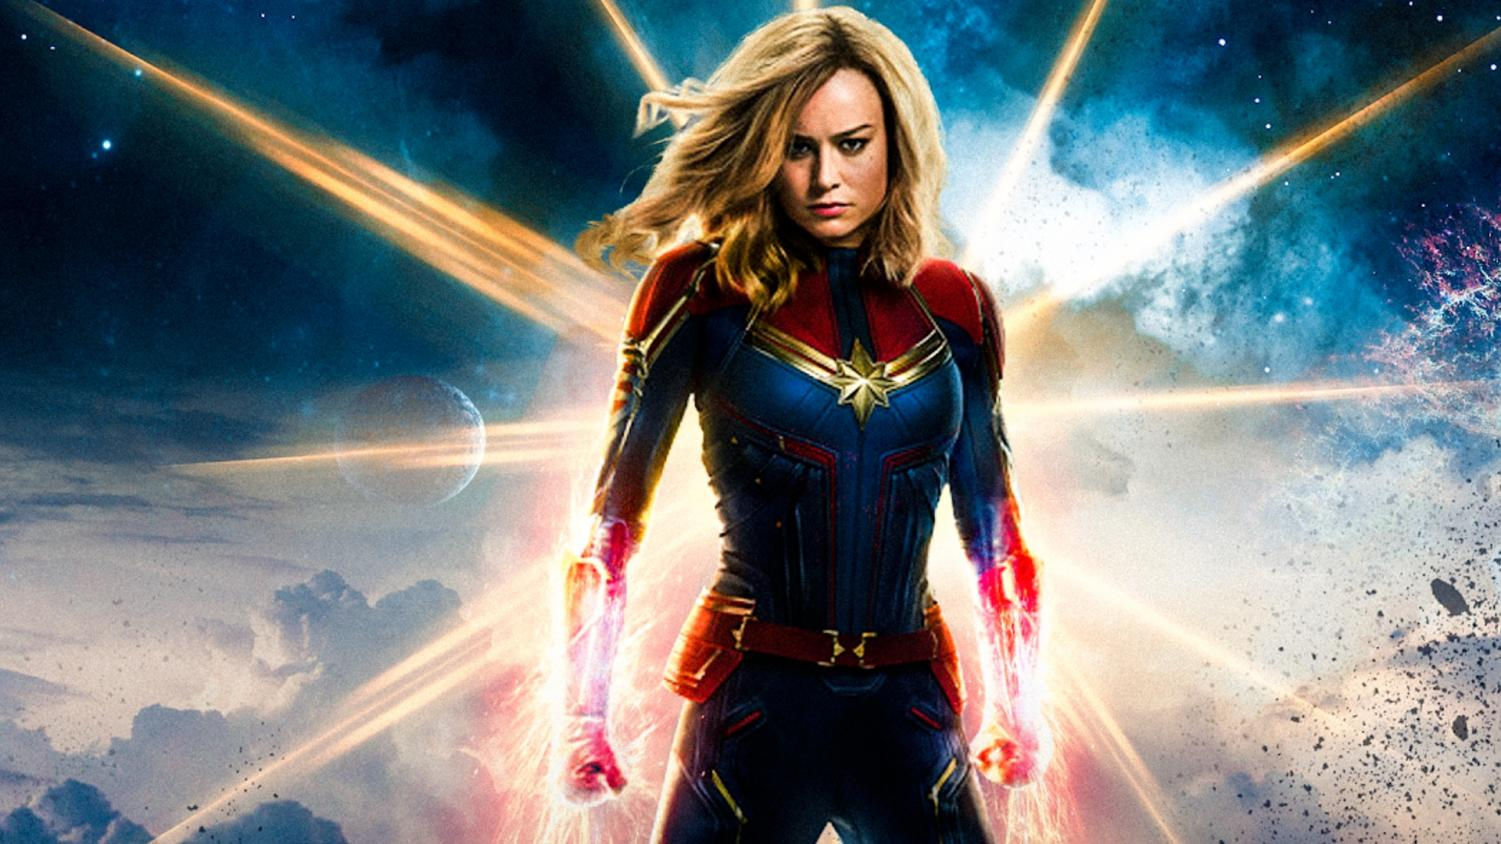 Captain Marvel arrives in theaters March 8.